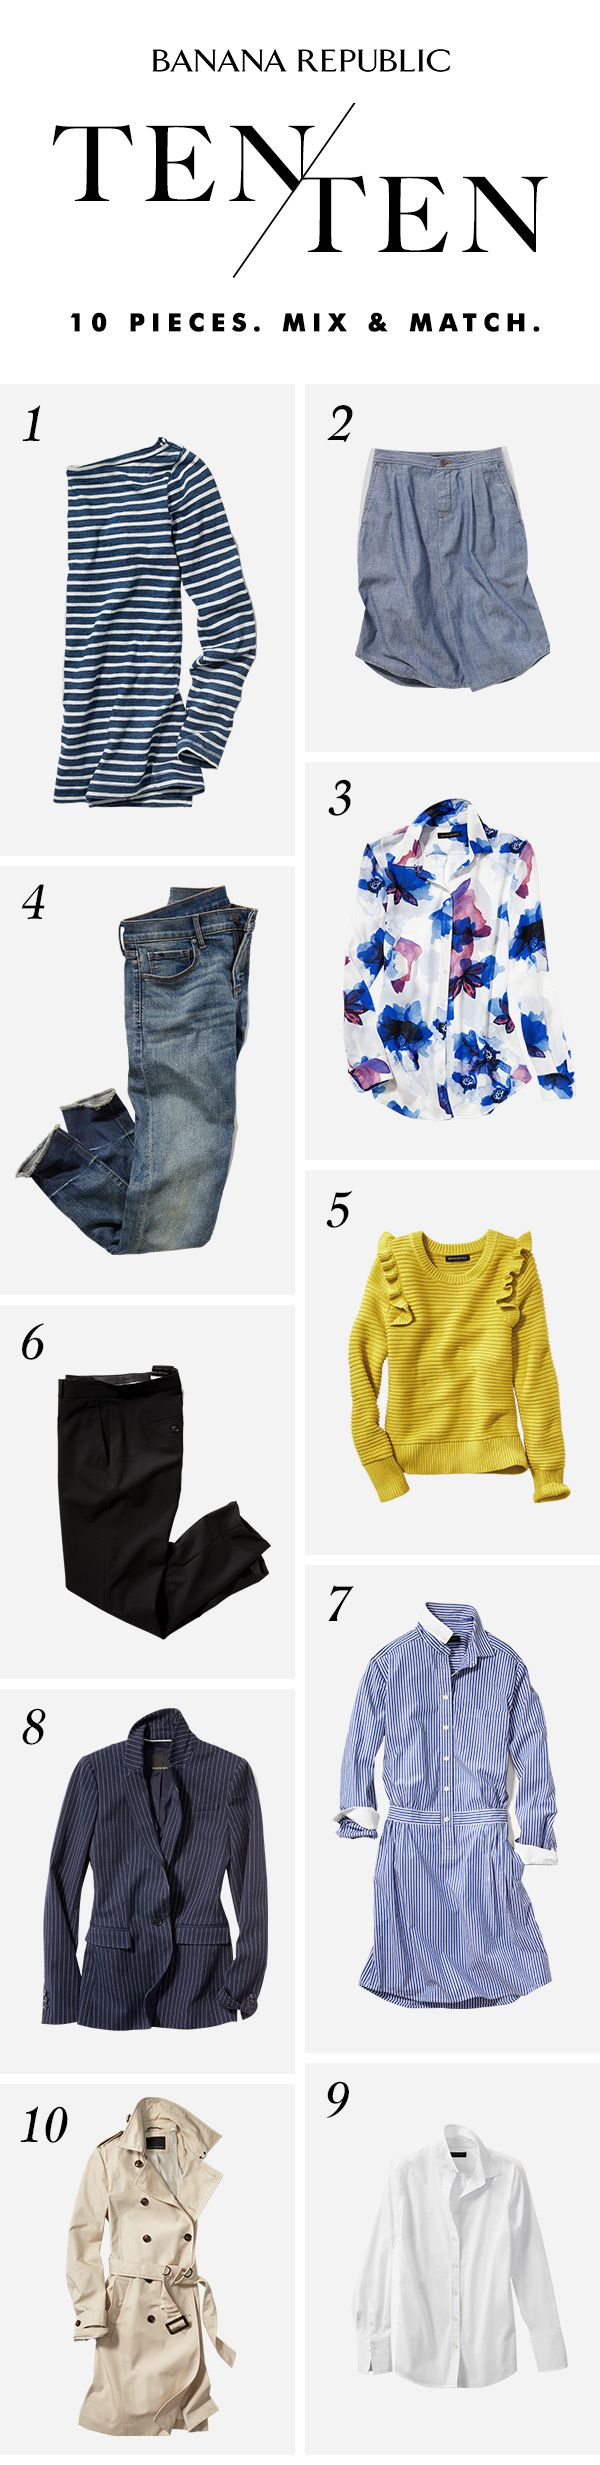 Start with 10 easy pieces and create 10 great new looks and then some. With countless combinations of classics and prints, denim and dresses, blazers and shirts…and the trench that works over everything. Mornings are solved. Weekends are solved. Mix & match. Divide & conquer. The option are endless, and suddenly…so is your closet.